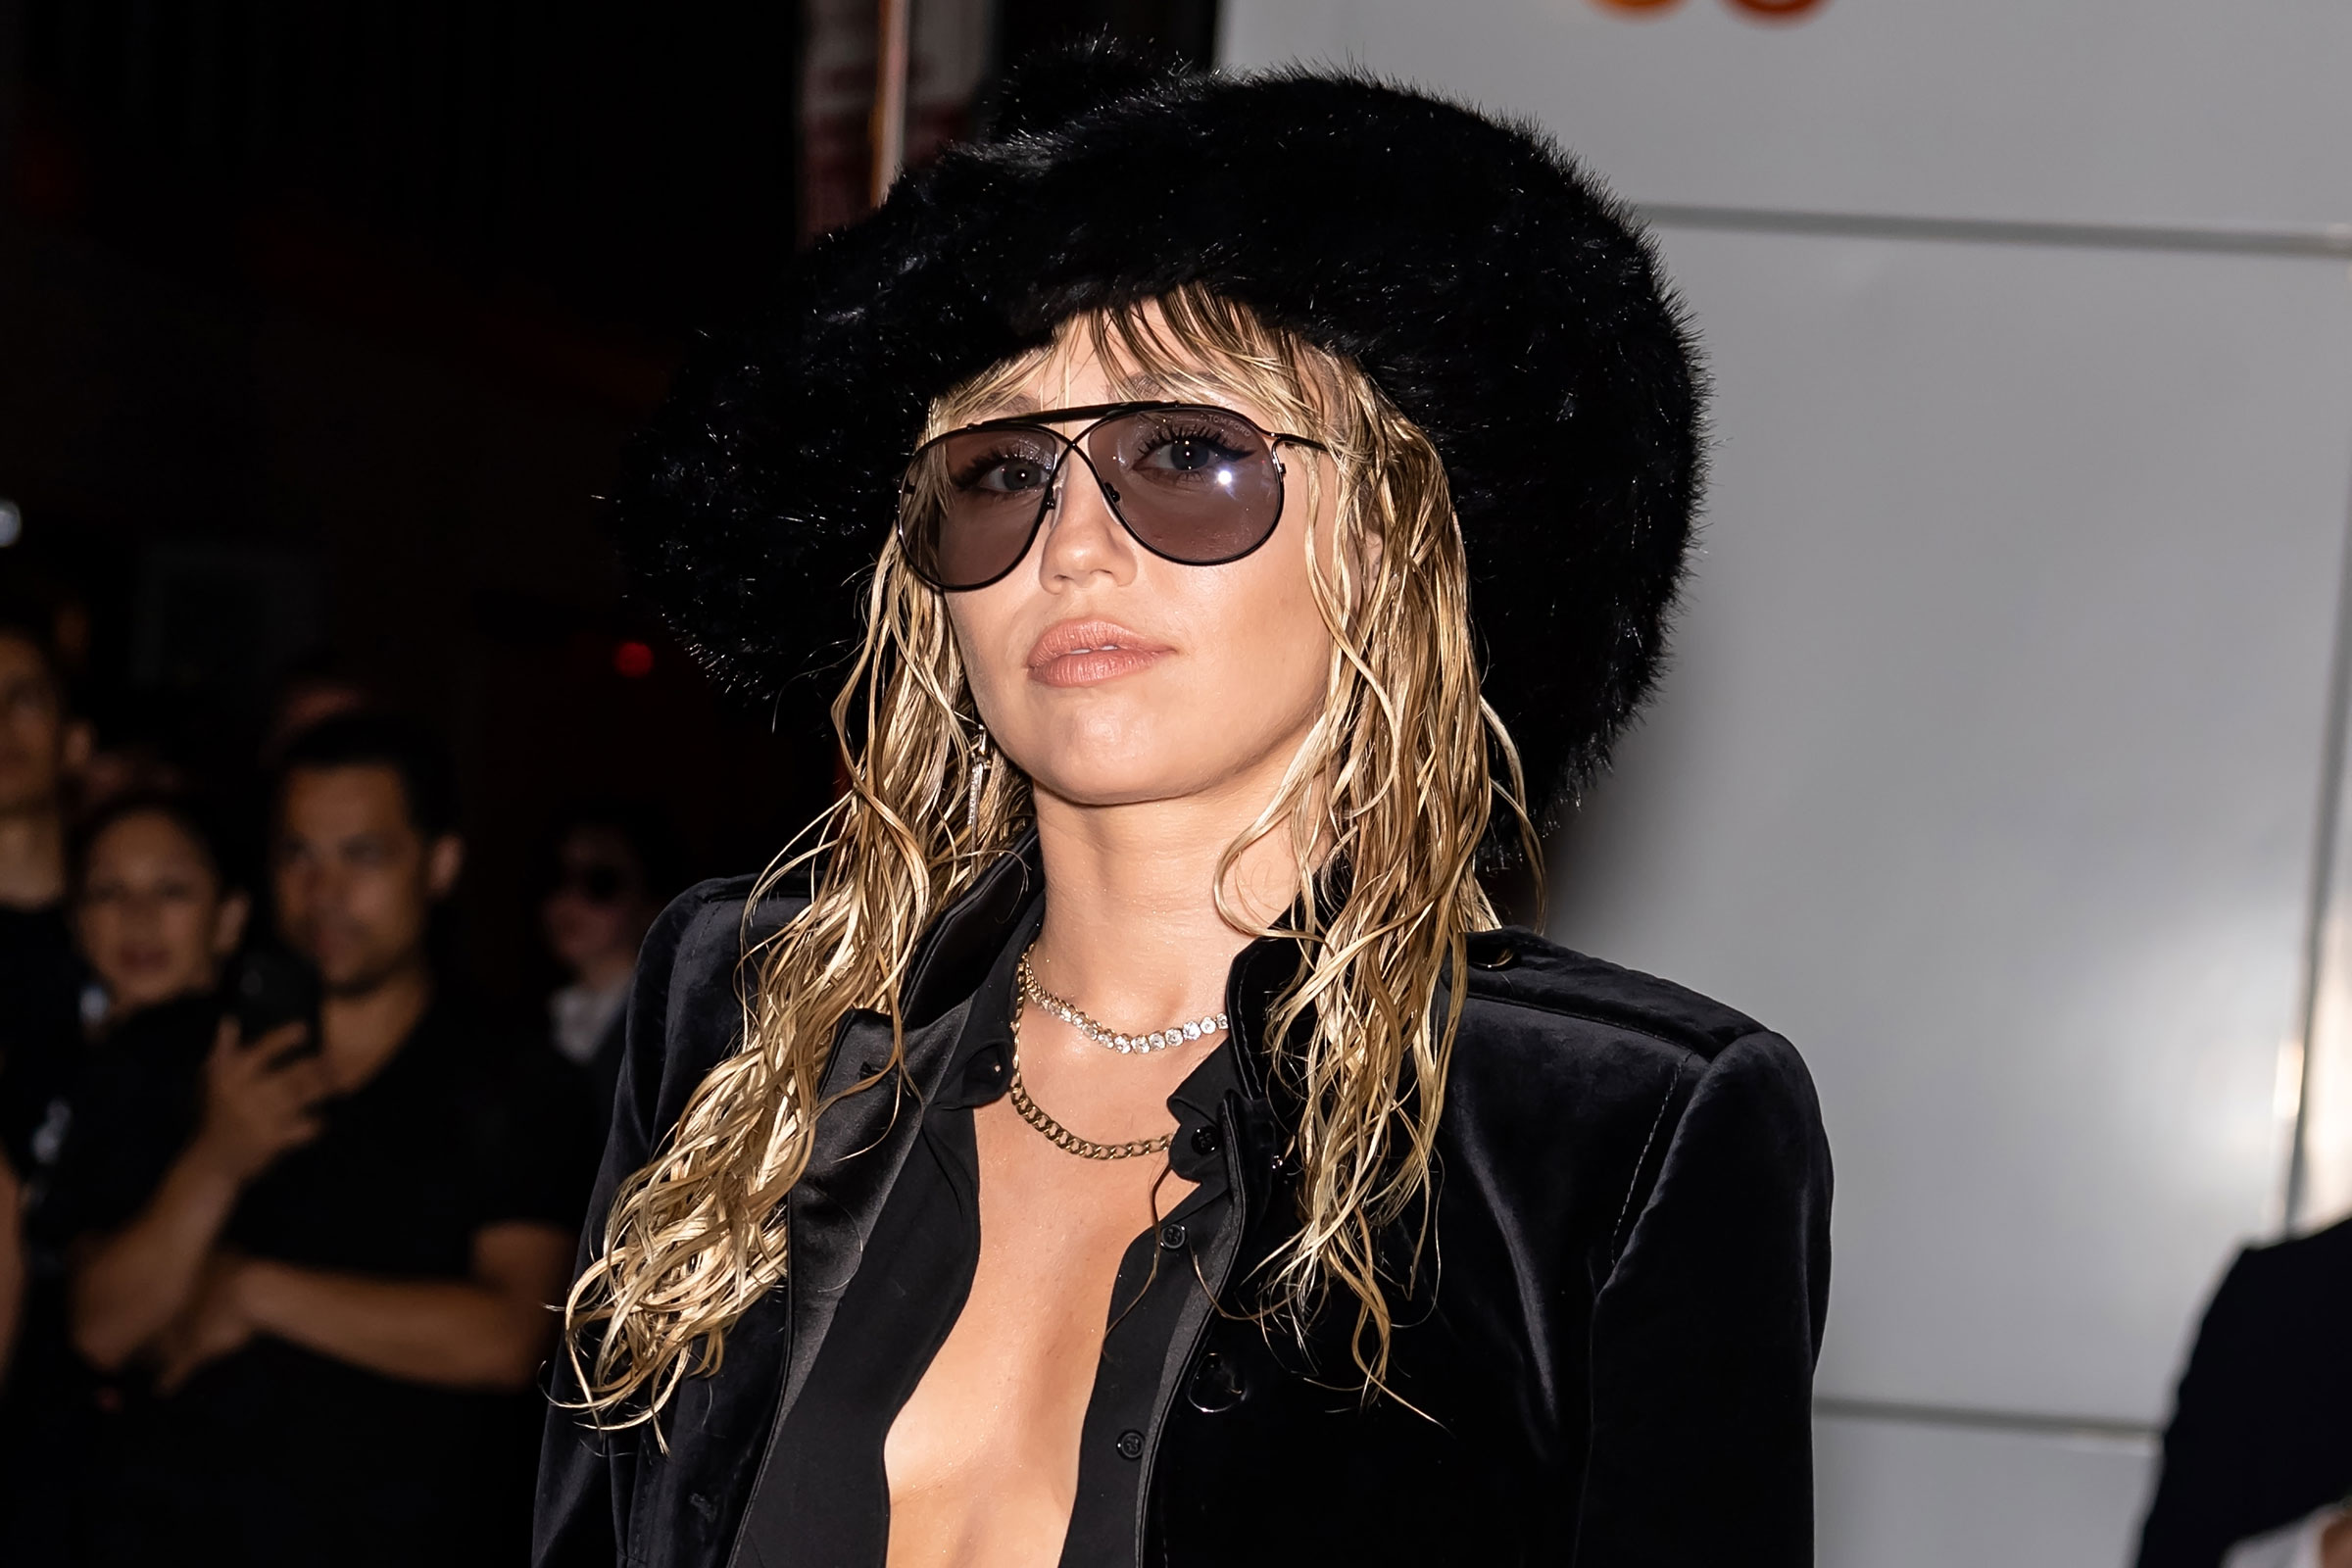 Miley Cyrus, a thin white woman, wears a black blouse and black cowboy hat.